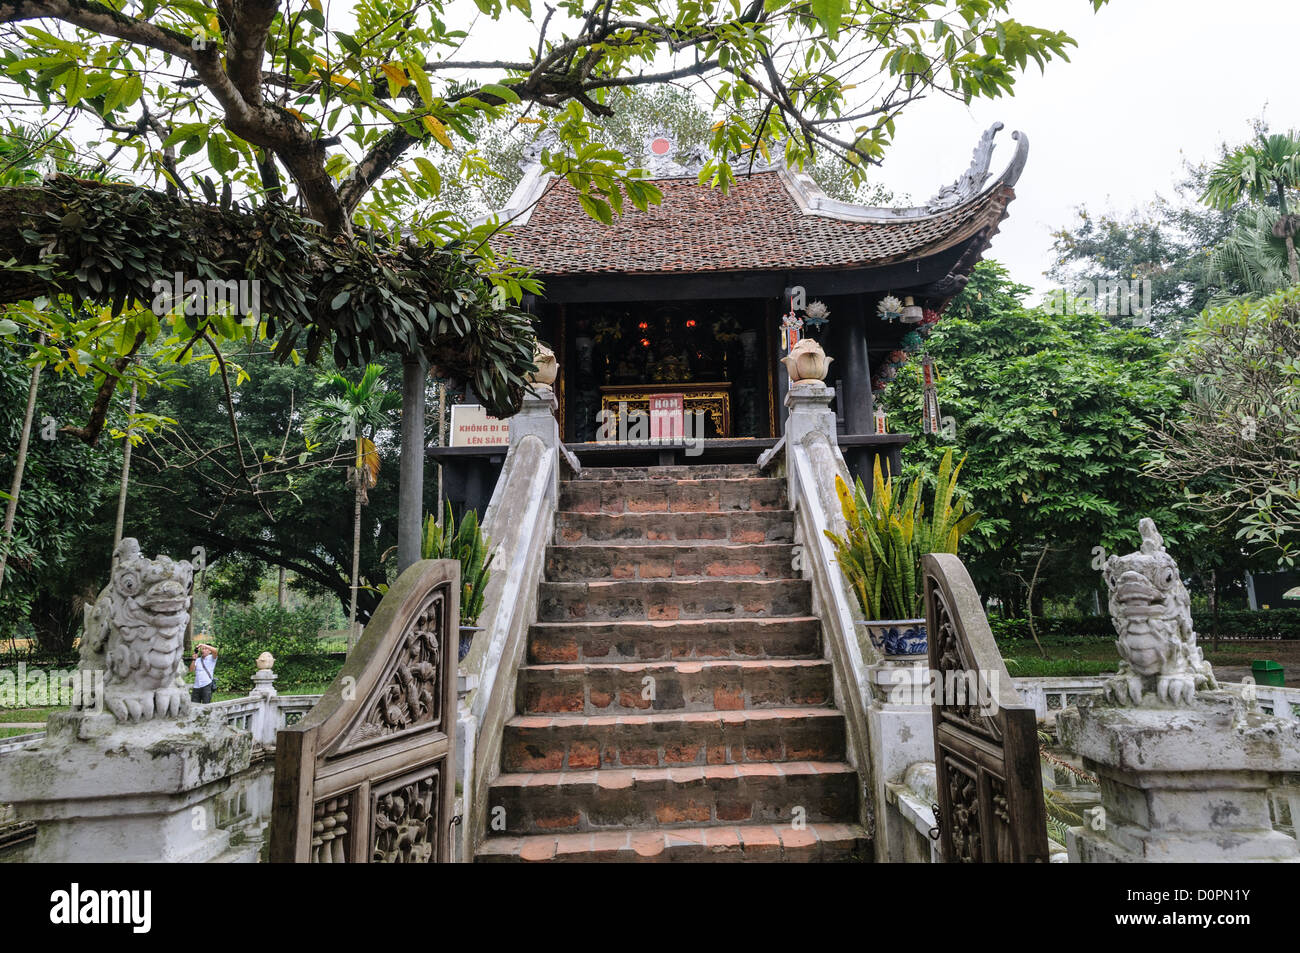 HANOI, Vietnam - The historic, small One Pillar Pagoda sits in the center of a small pond near the Ho Chi Minh Museum - Stock Image